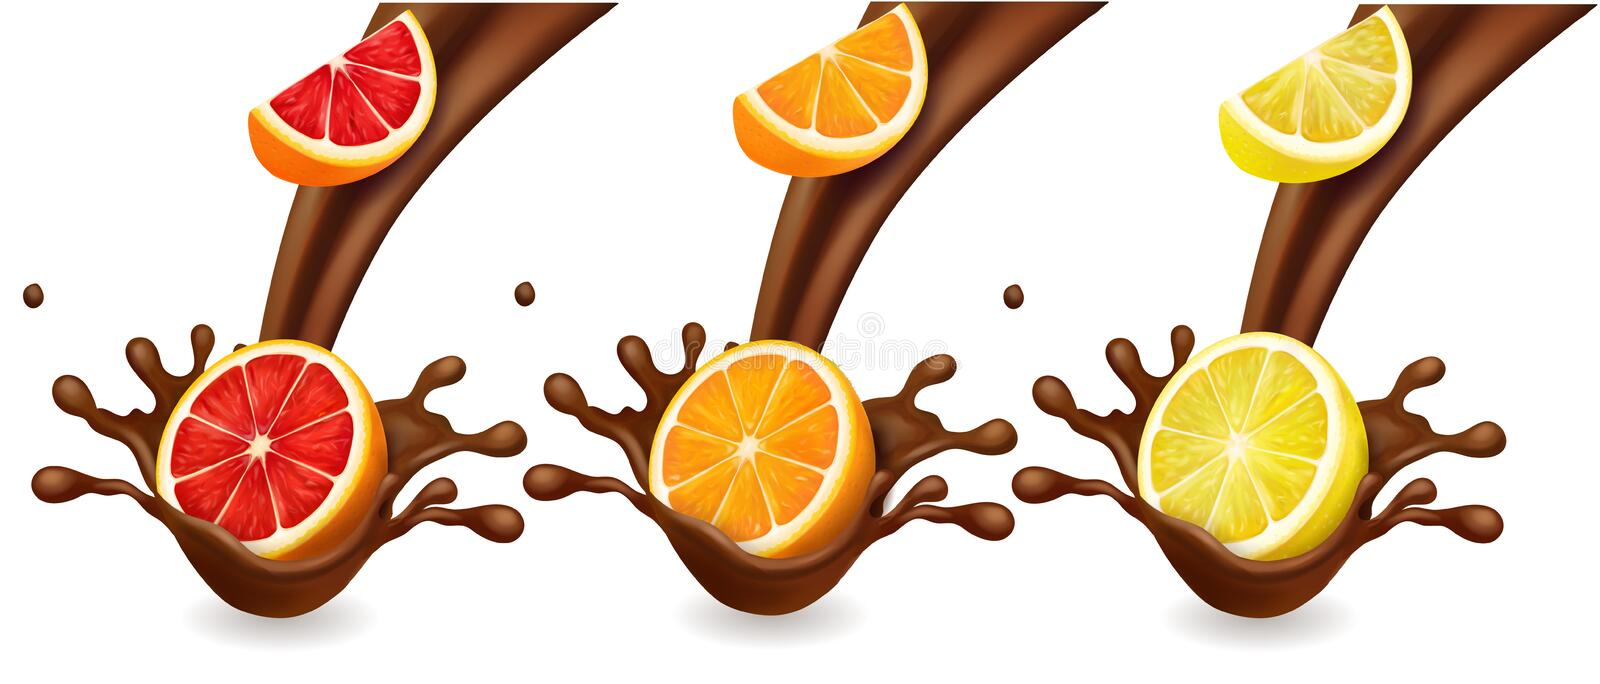 Porte des fruits le cutrus dans l'éclaboussure de chocolat L'orange, citron, vecteur réaliste de pamplemousse a placé illustration stock